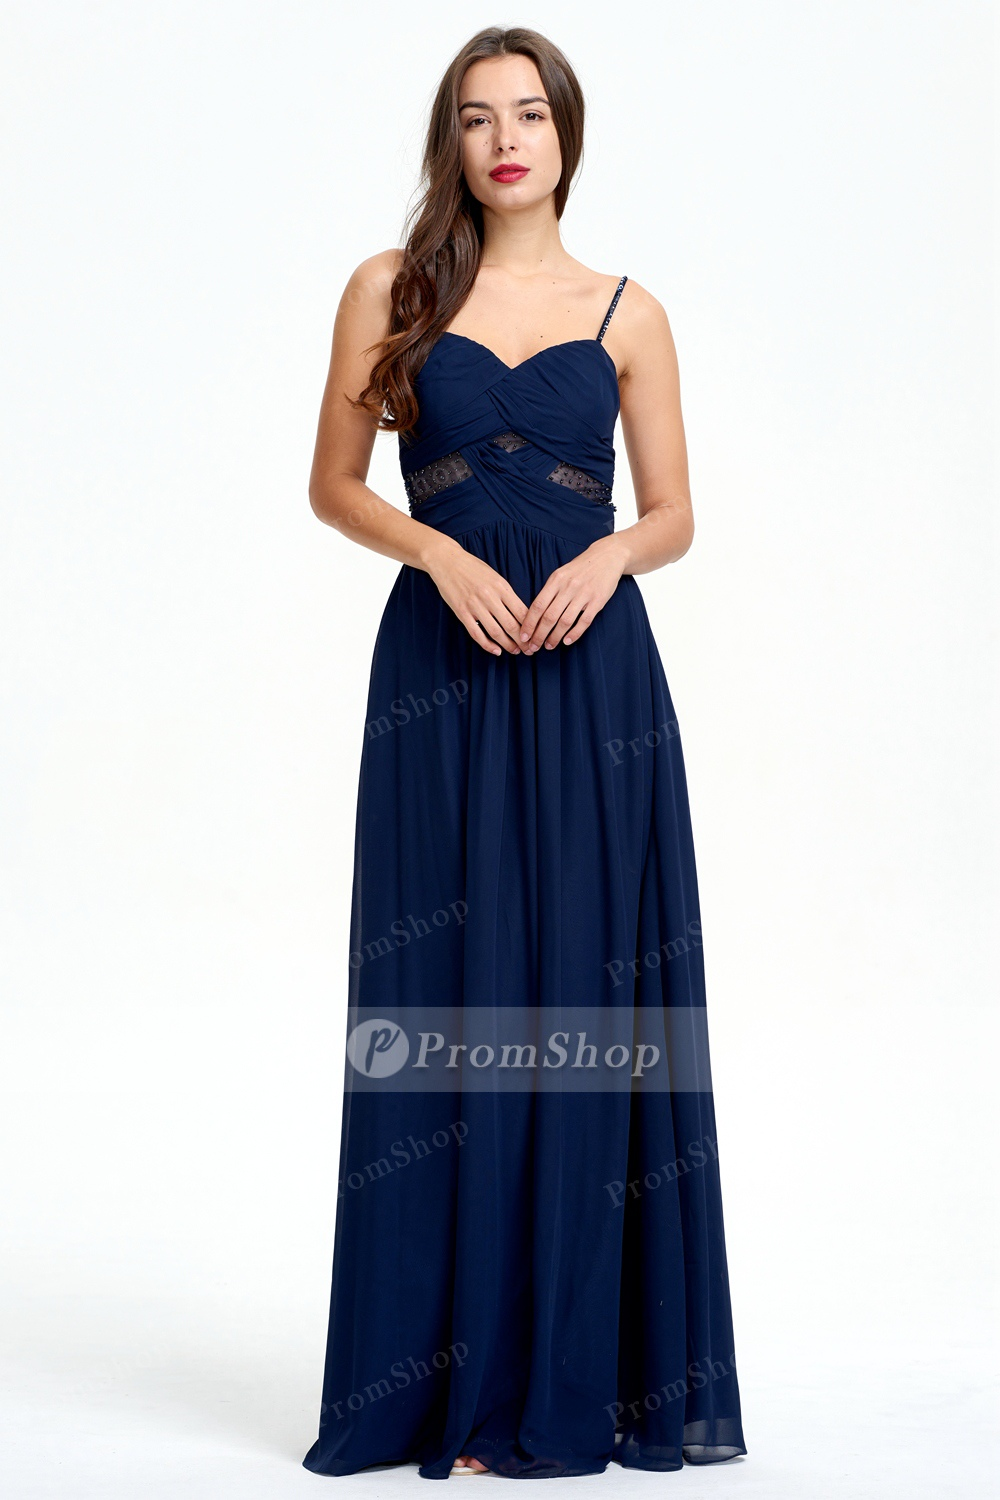 The Graceful Mist: 8 Classic Dresses for Prom